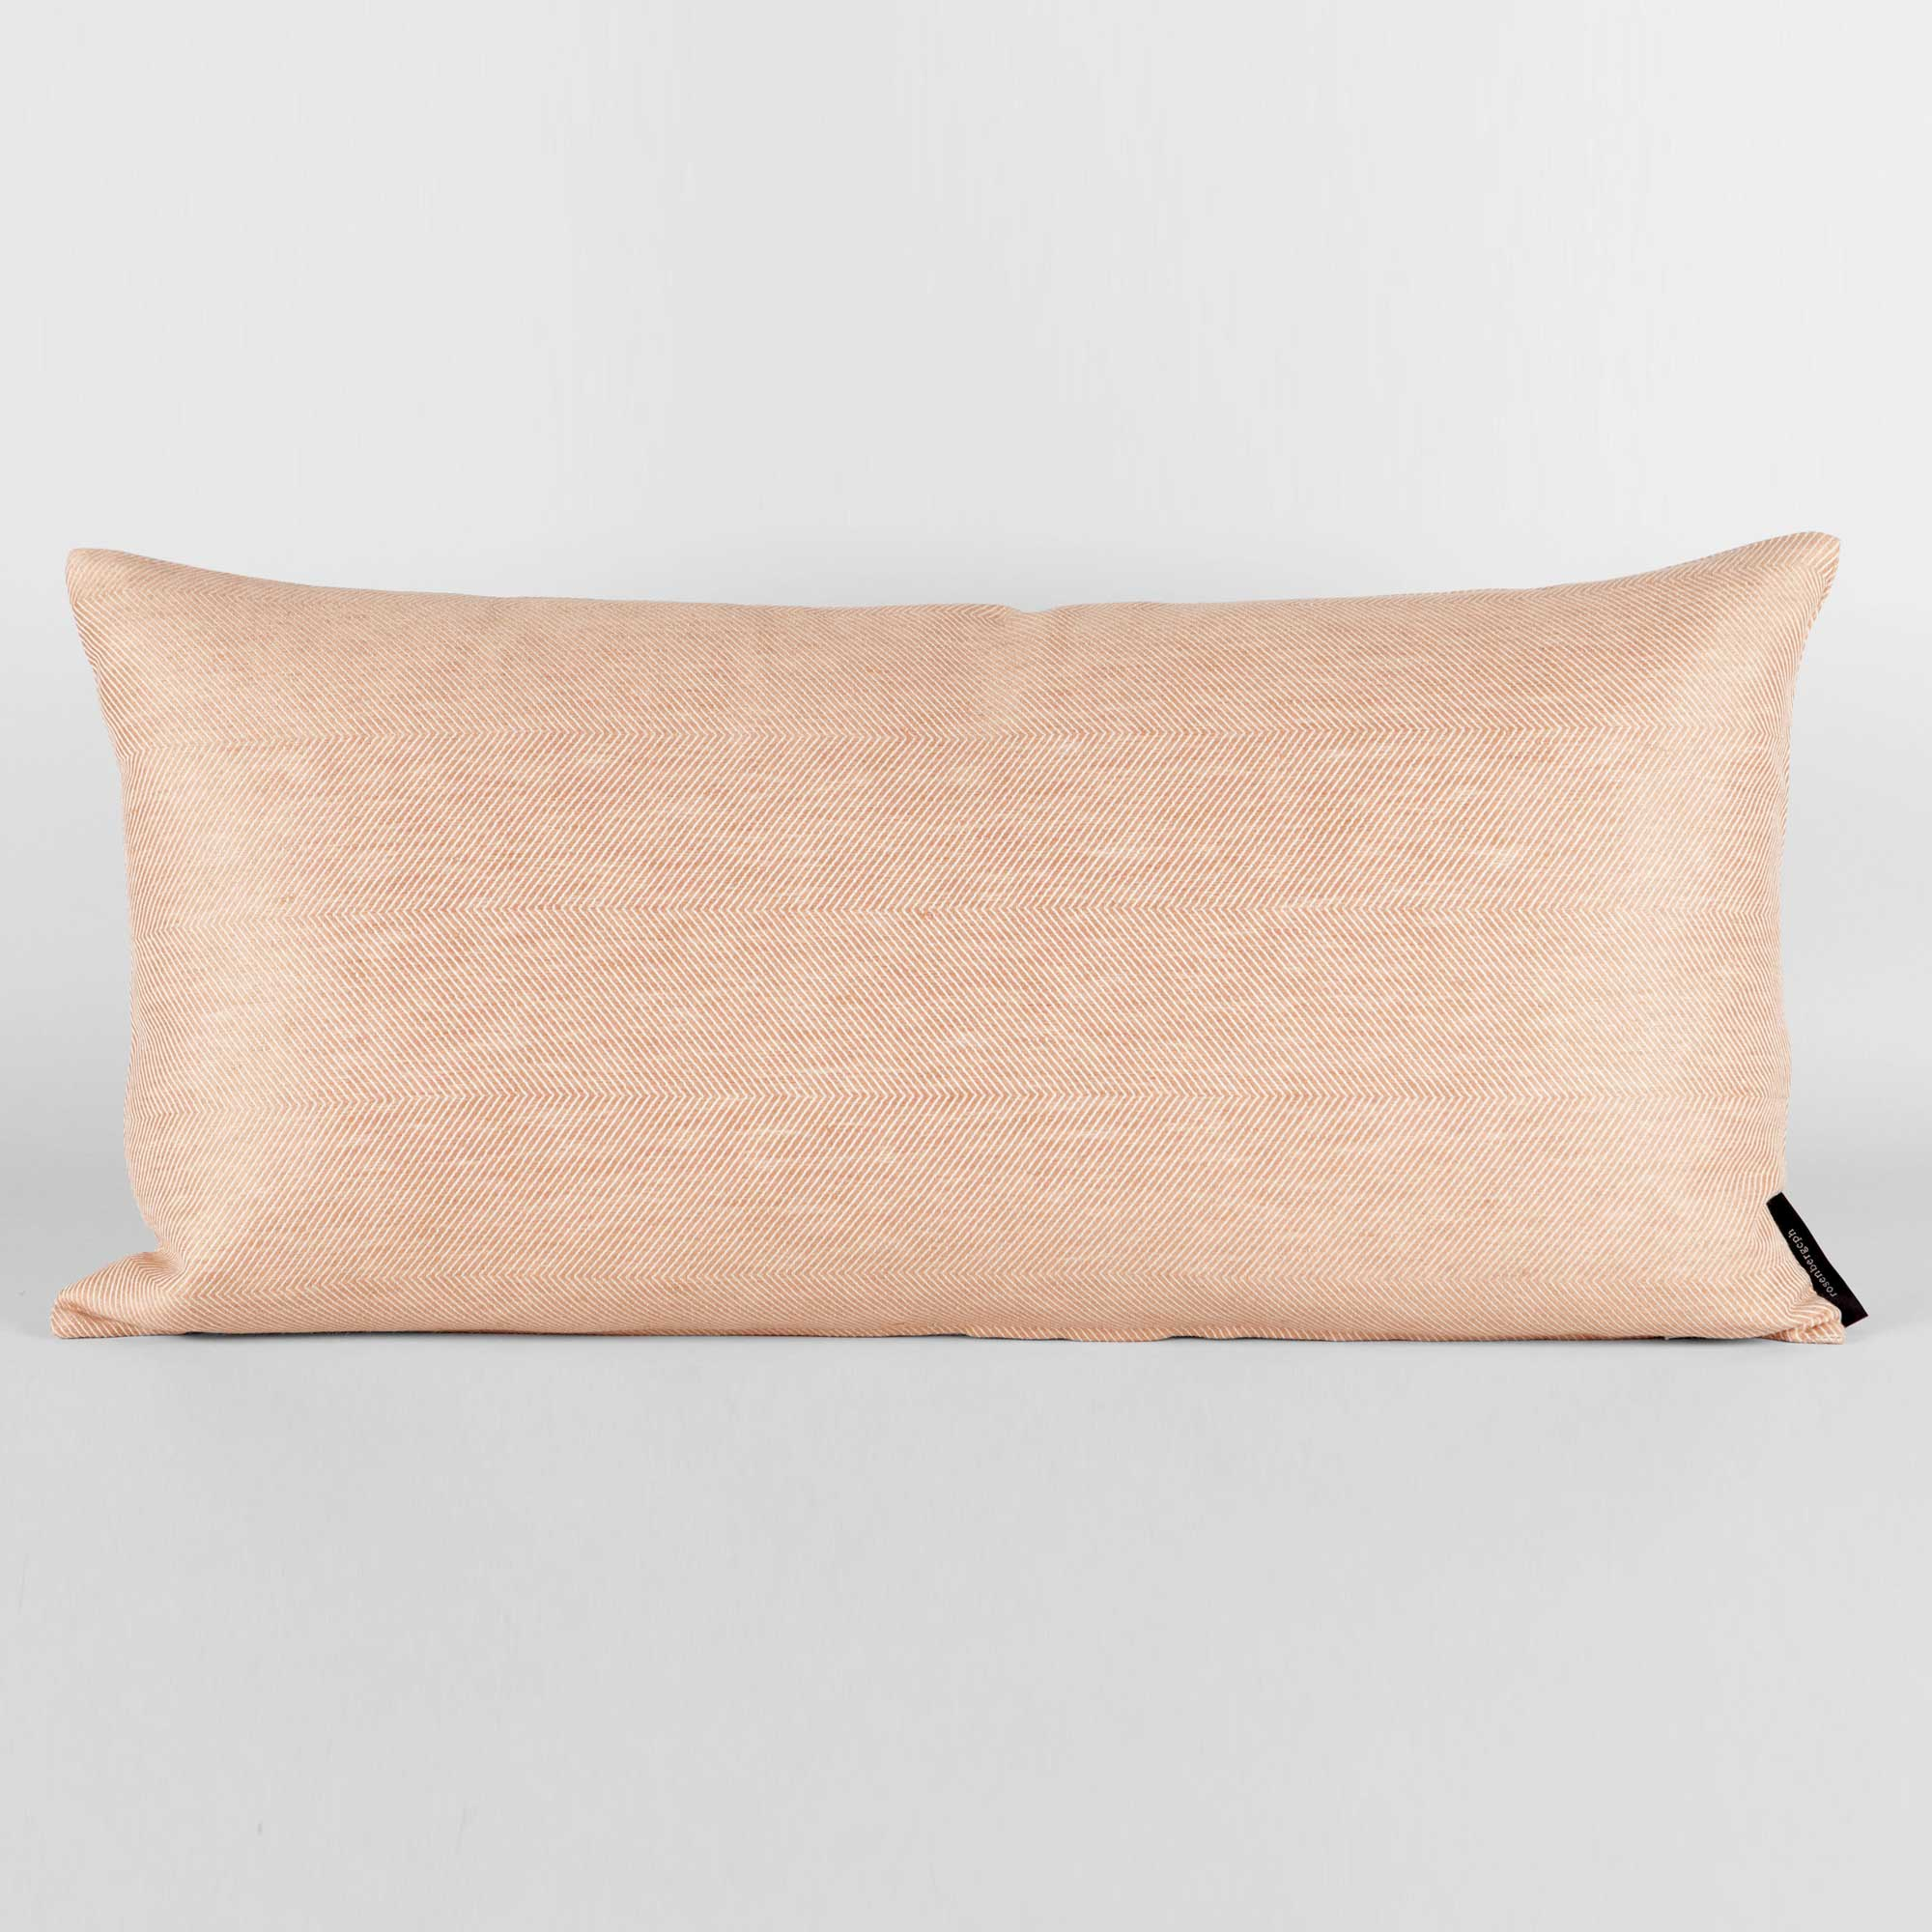 Rectangular cushion, coral